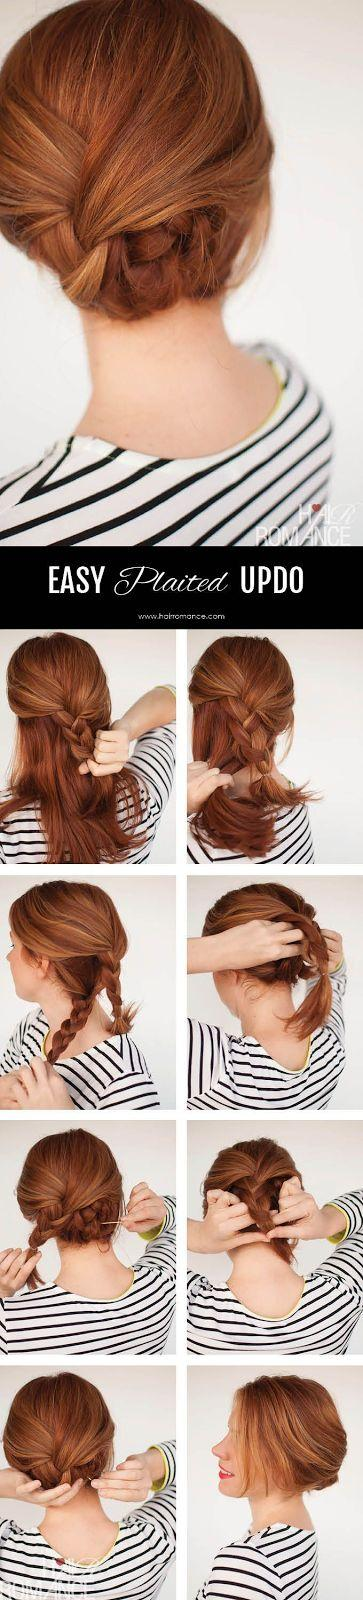 Mariage - 13 Simple Braided Hairstyles For Beginners